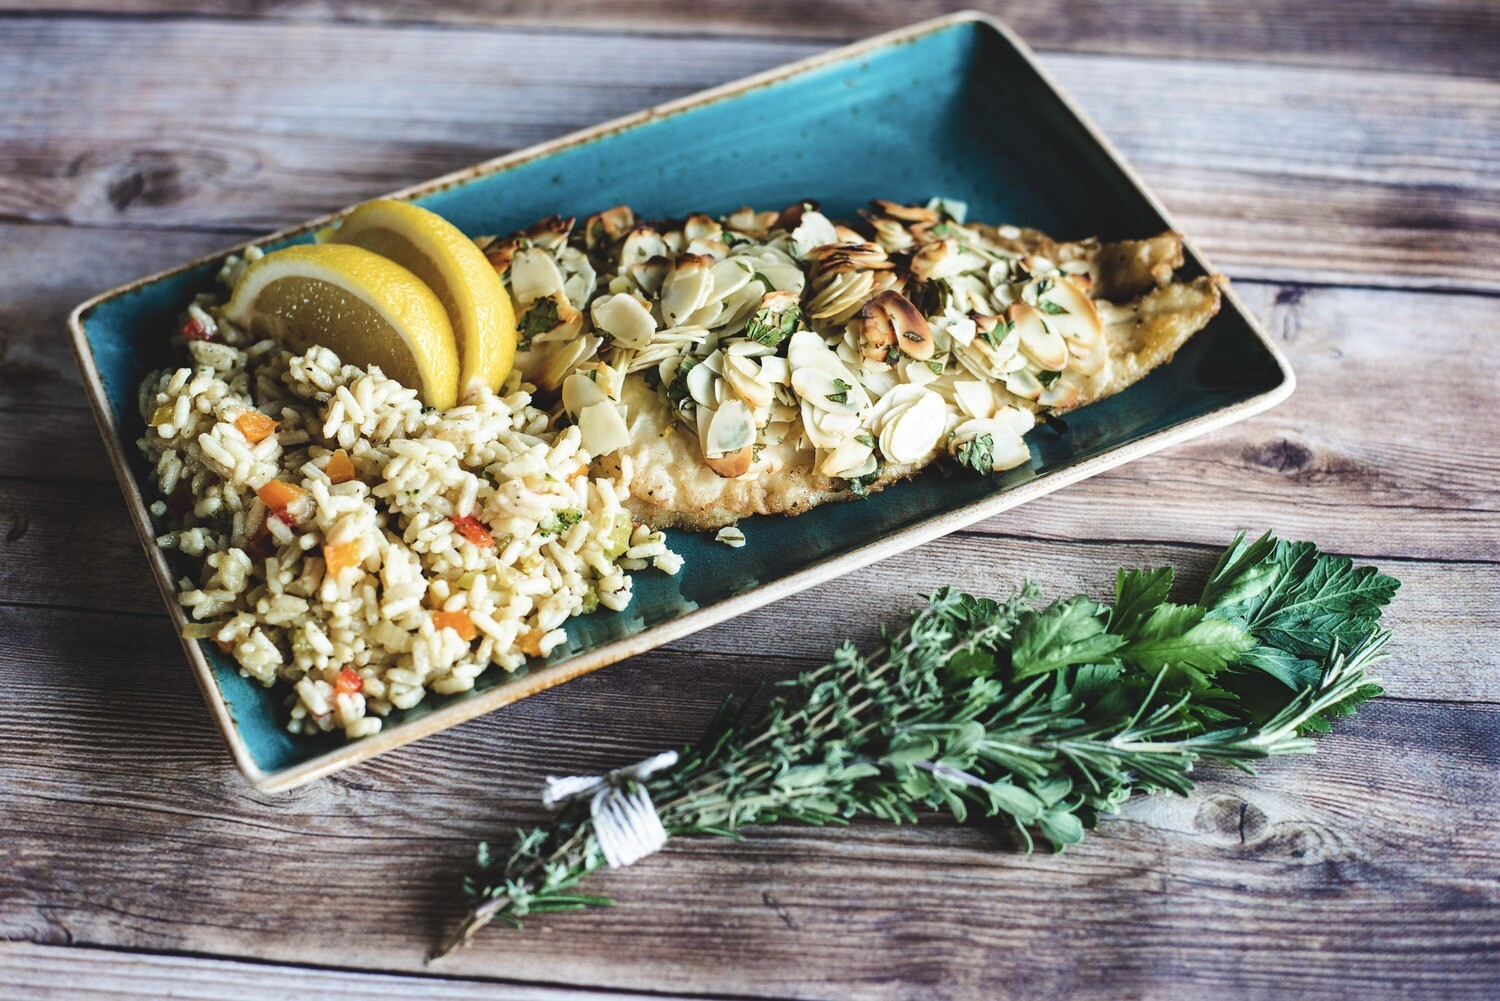 Filet de sole amandine sur couscous